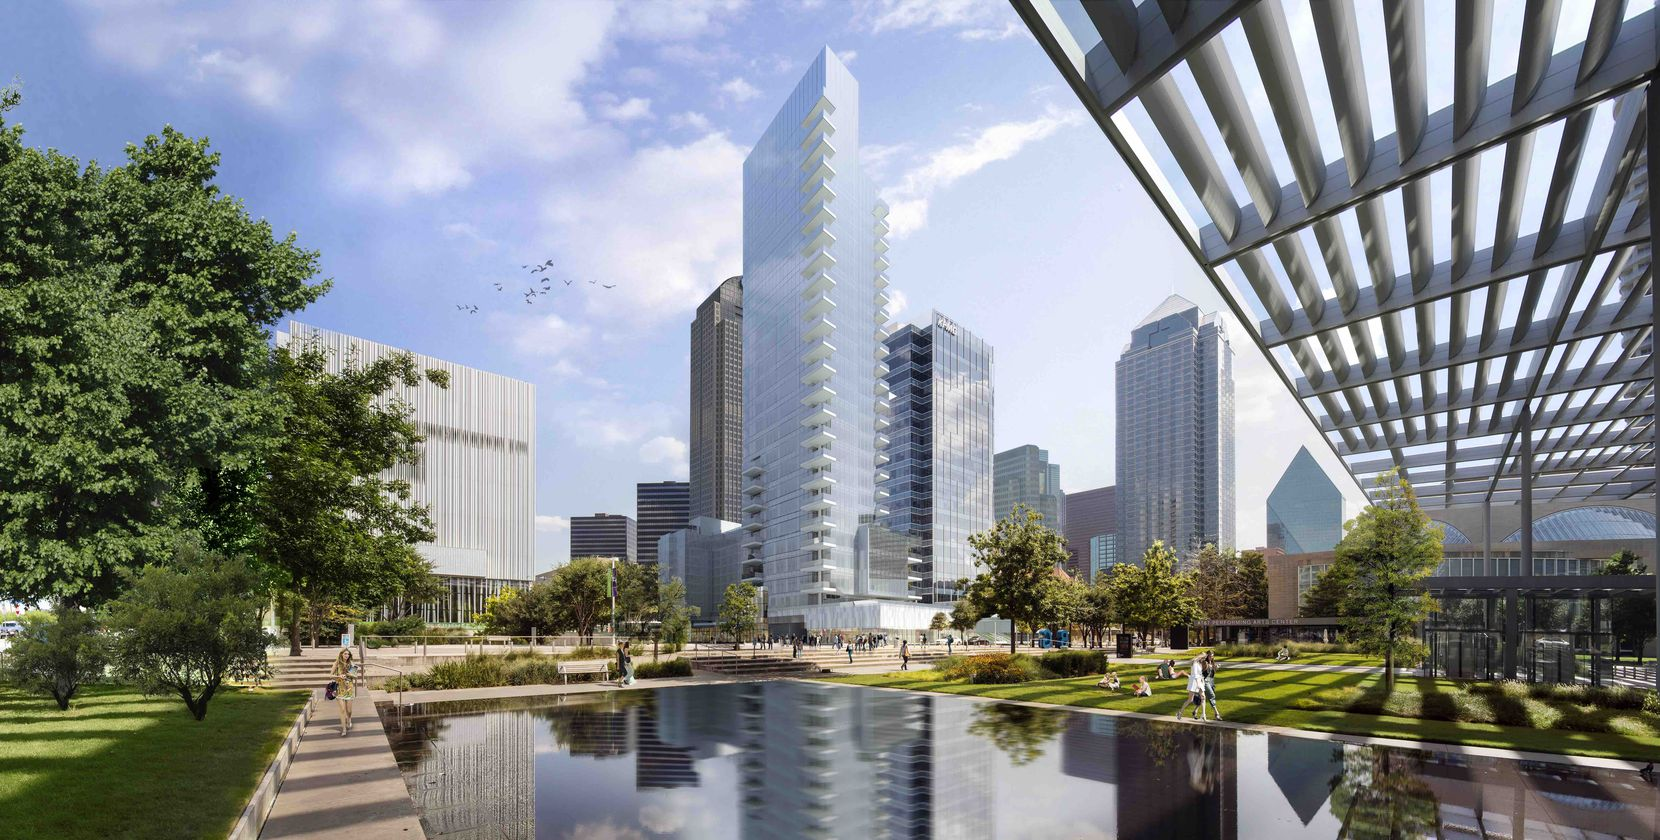 The 28-story Hall Arts Residences condo tower will open late this year.